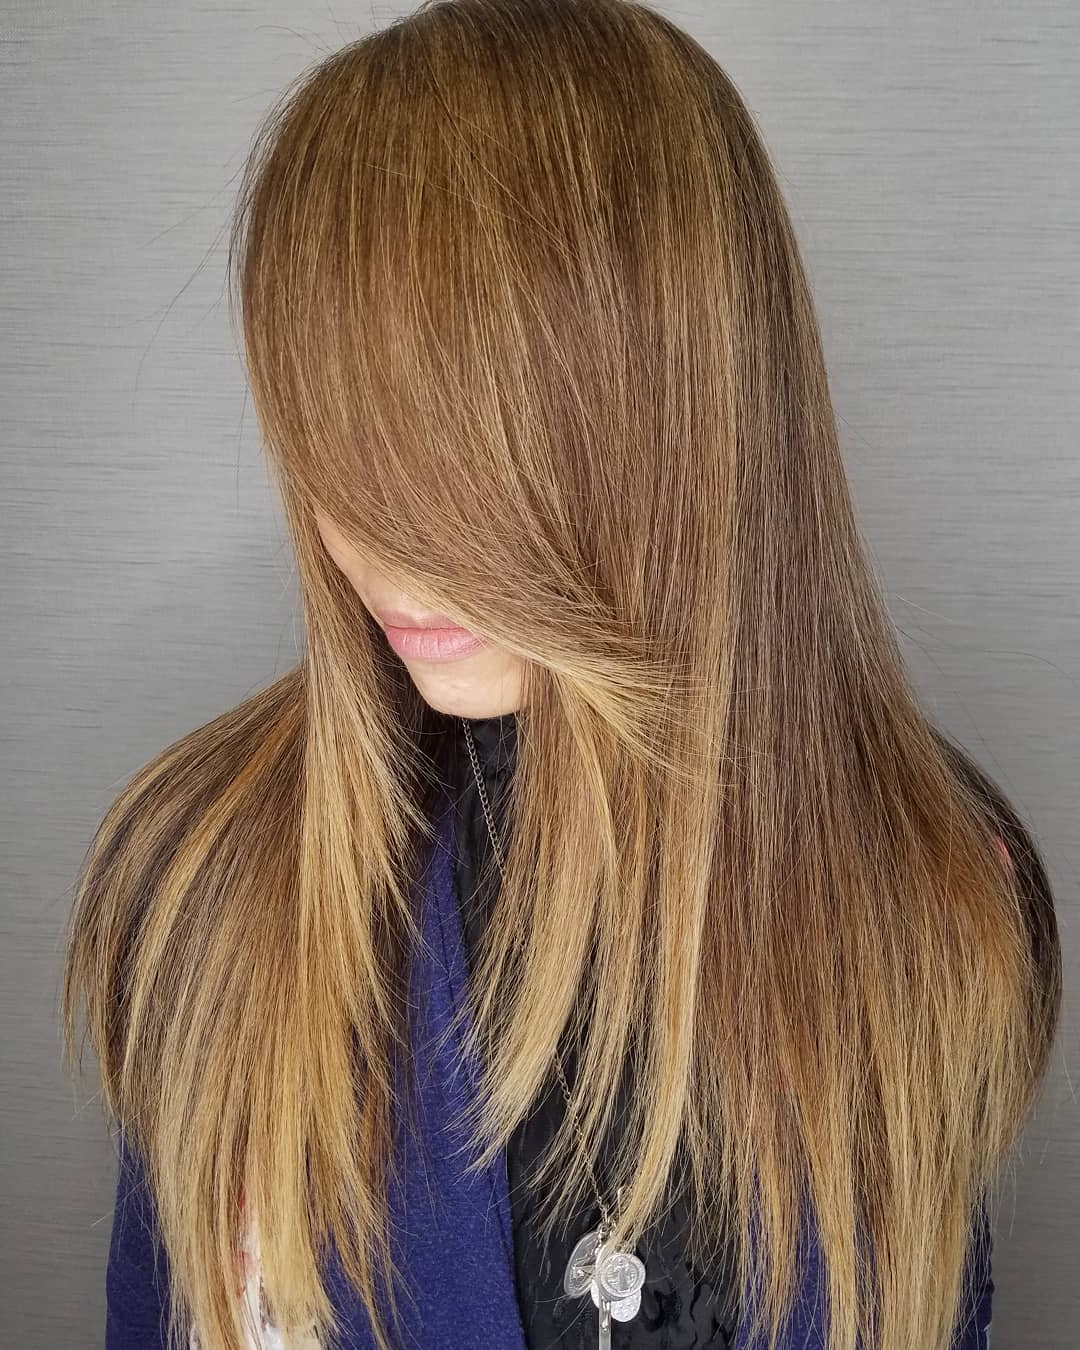 Trendy Hairstyles And Haircuts For Long Layered Hair To Rock With Recent Straight Shaggy Locks Long Hairstyles (View 19 of 20)